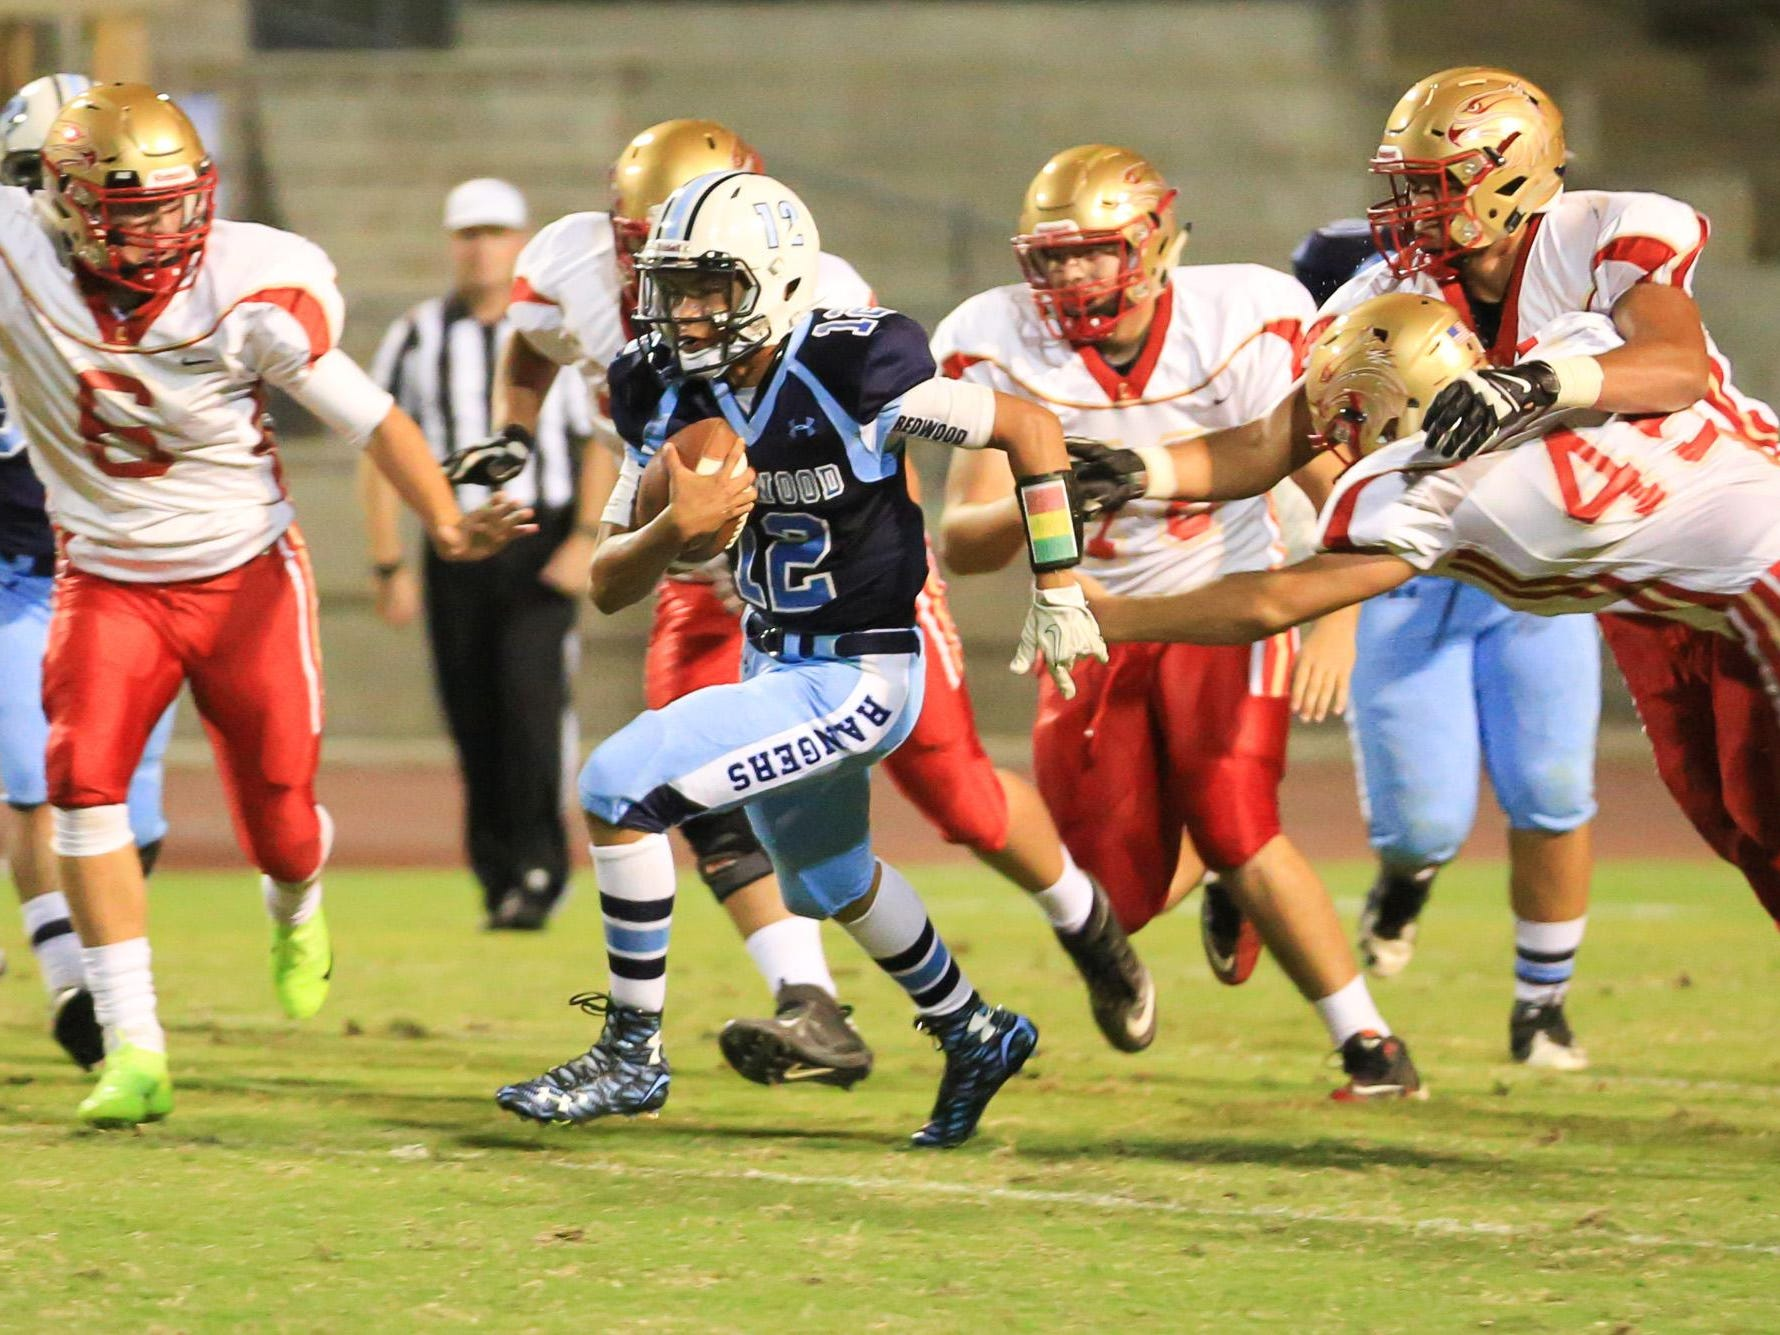 Redwood's QB Frankie Ayon (12) rushes downfield against Centennial in a non-league game.